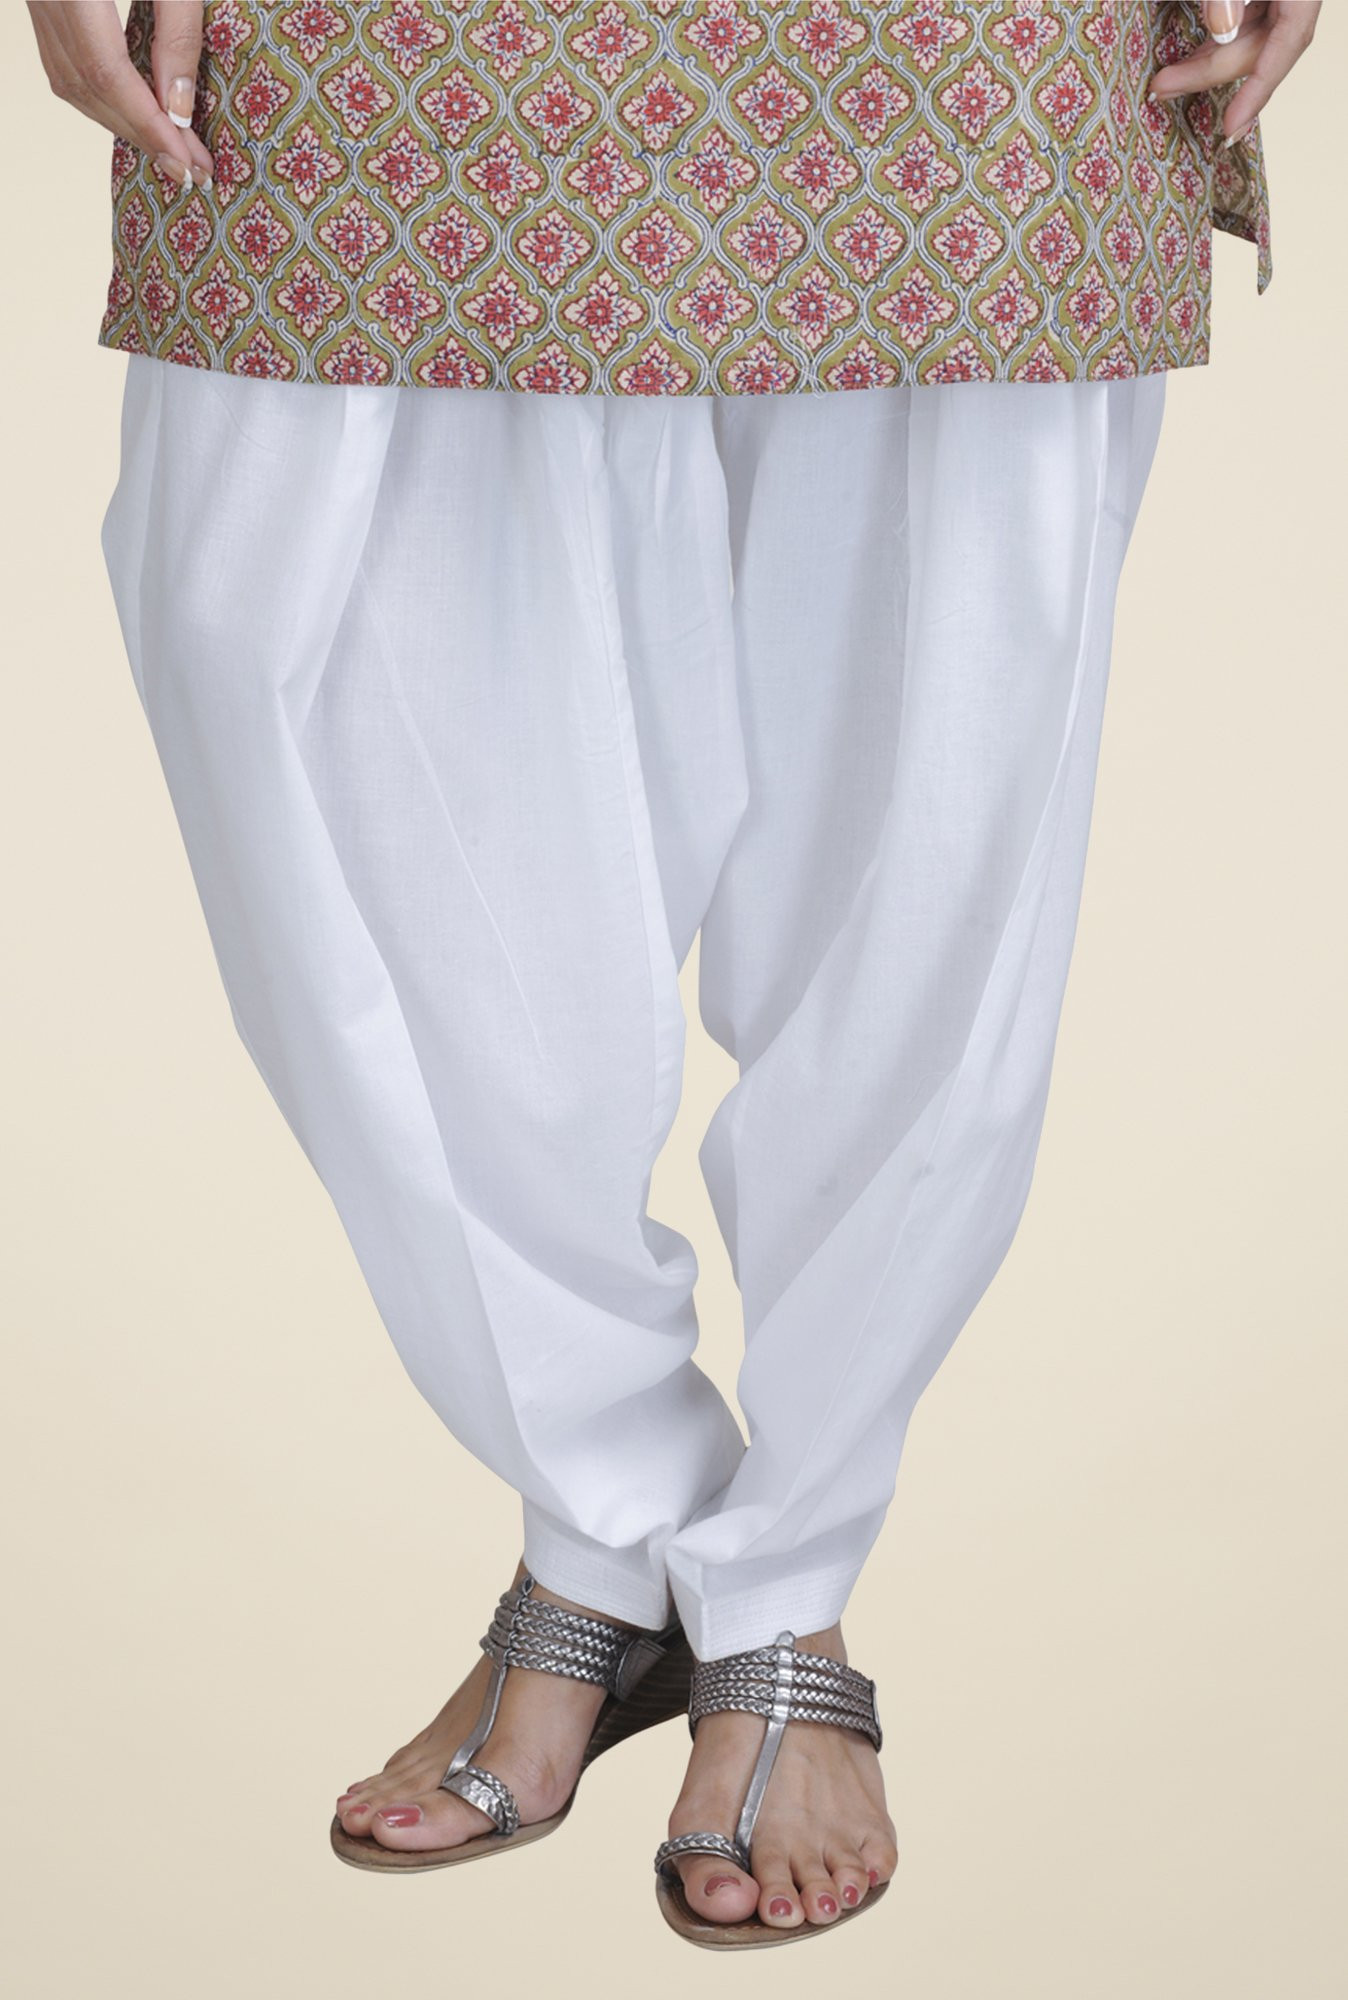 Fabindia White Solid Patiala